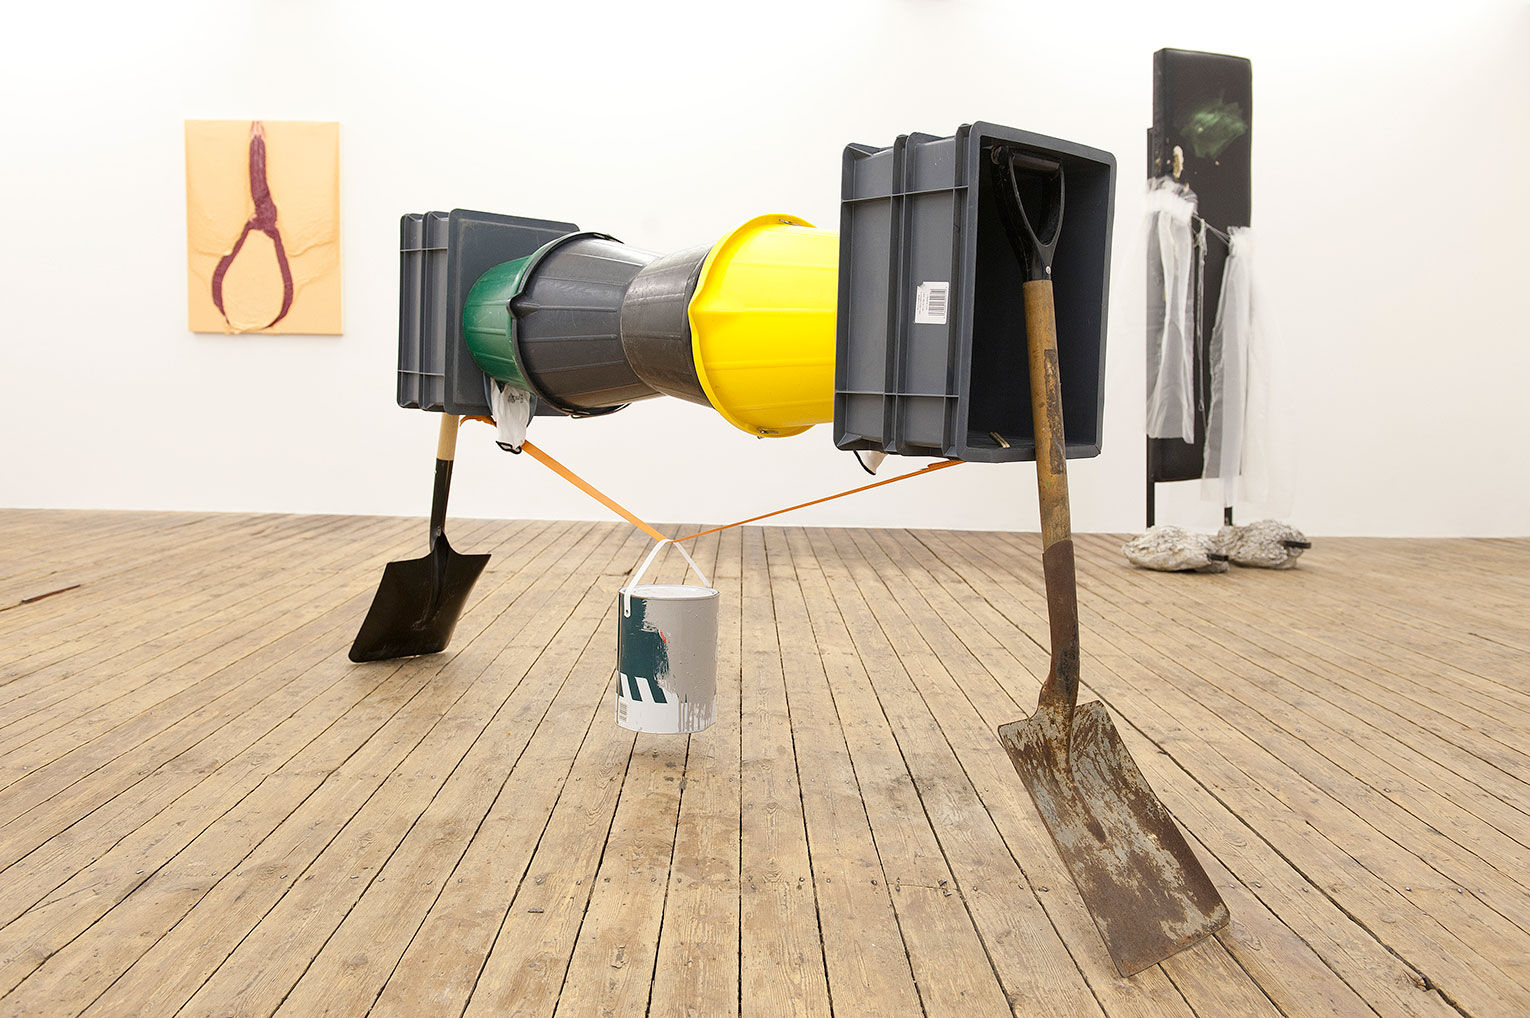 <b>Title:&nbsp;</b>Span<br /><b>Year:&nbsp;</b>2009<br /><b>Medium:&nbsp;</b>Shovels, buckets, plastic crates, gloves, nylon strap<br /><b>Size:&nbsp;</b>200 x 35 x 100 cm